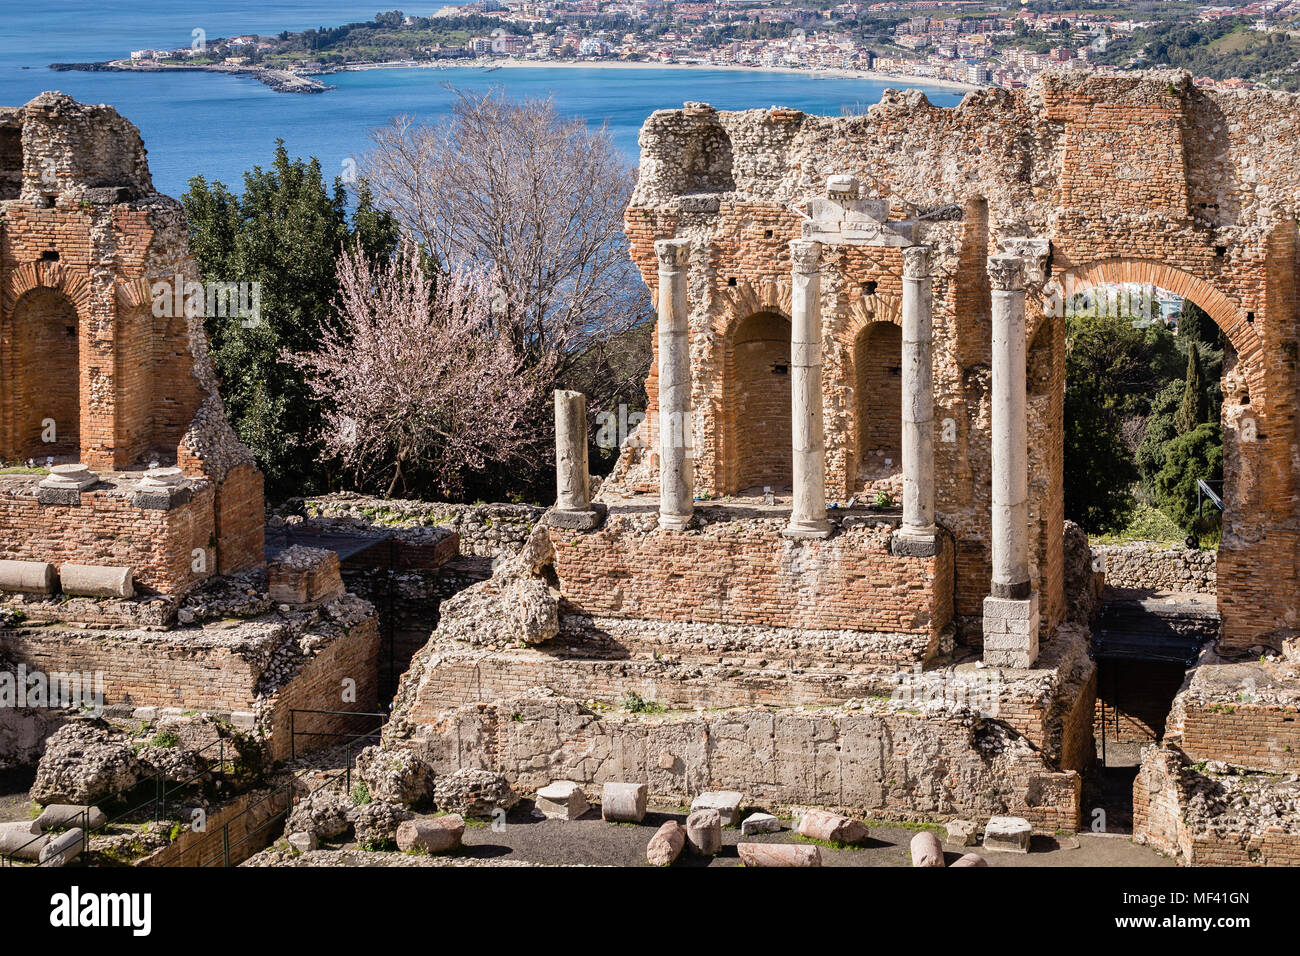 Ancient Greek-Roman theatre of Taormina, Sicily. - Stock Image